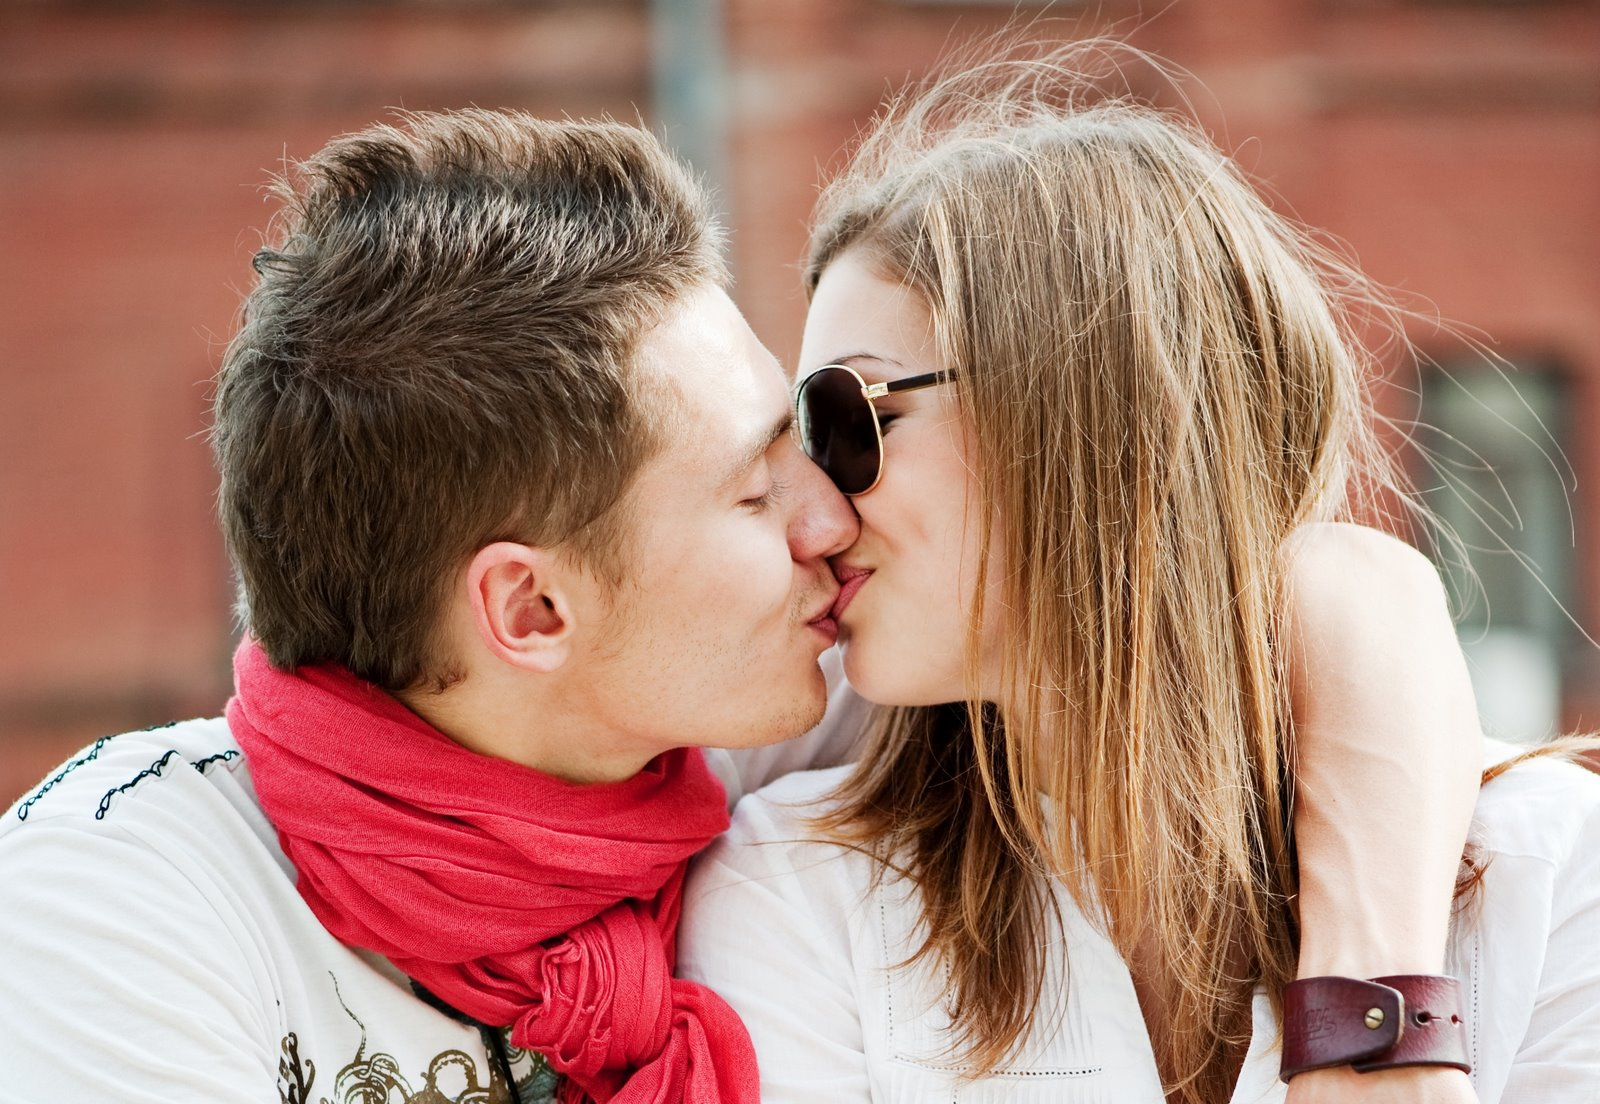 Romantic Love Couples Kissing Wallpapers 4 Top World Pic